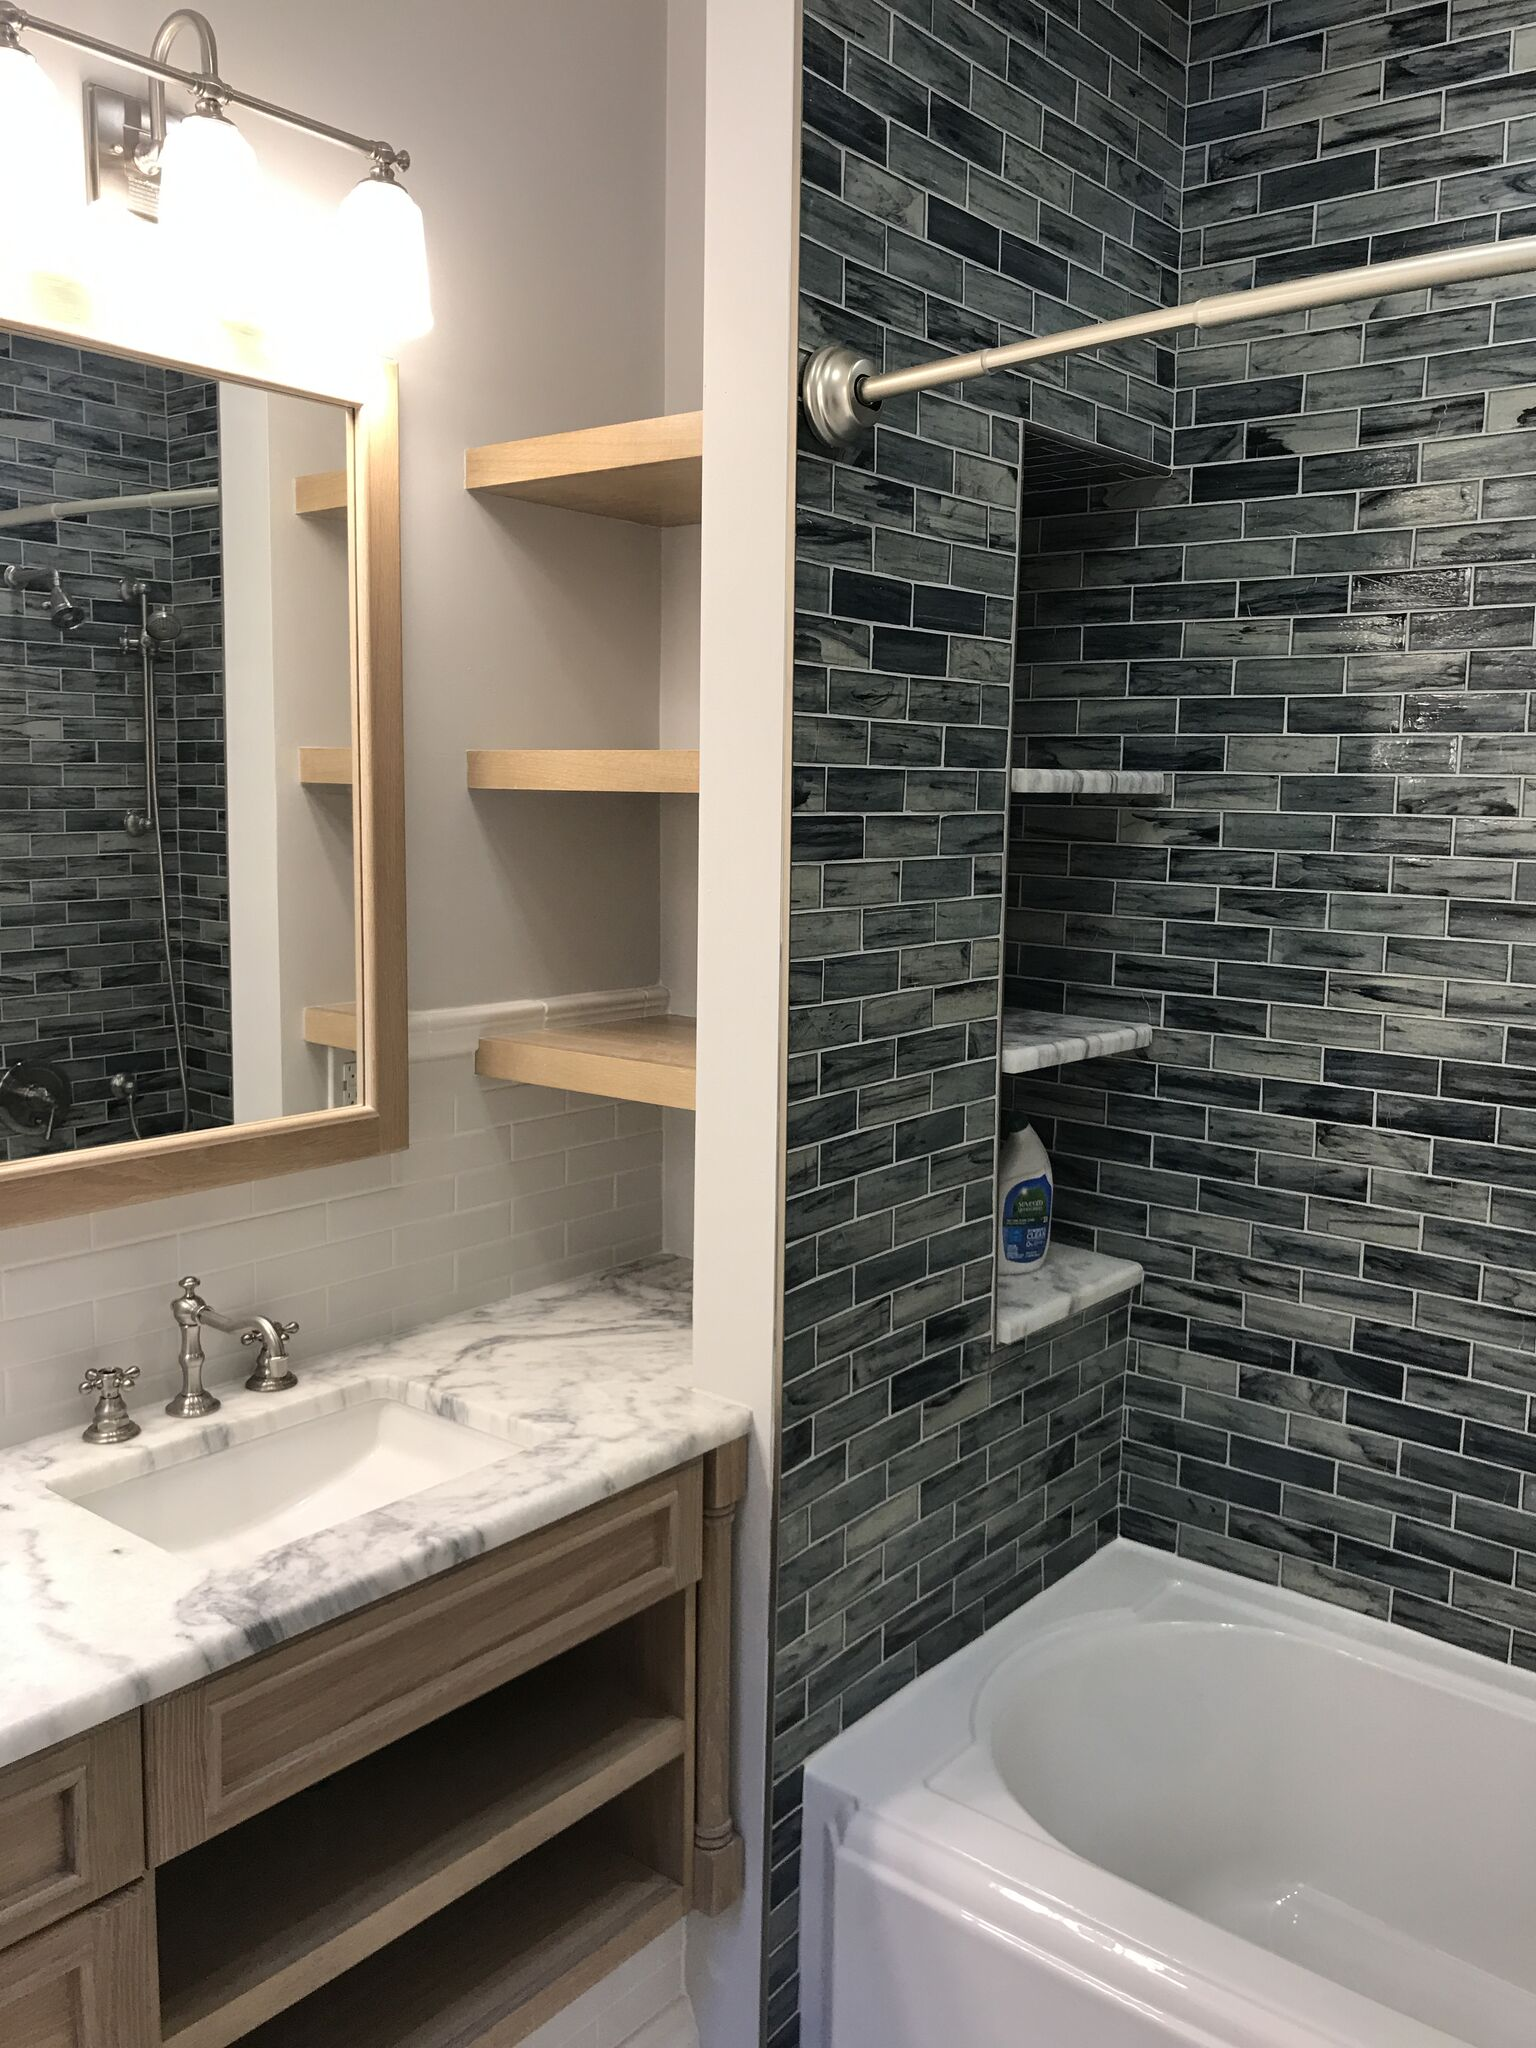 Create a bathroom fit for a magazine spread